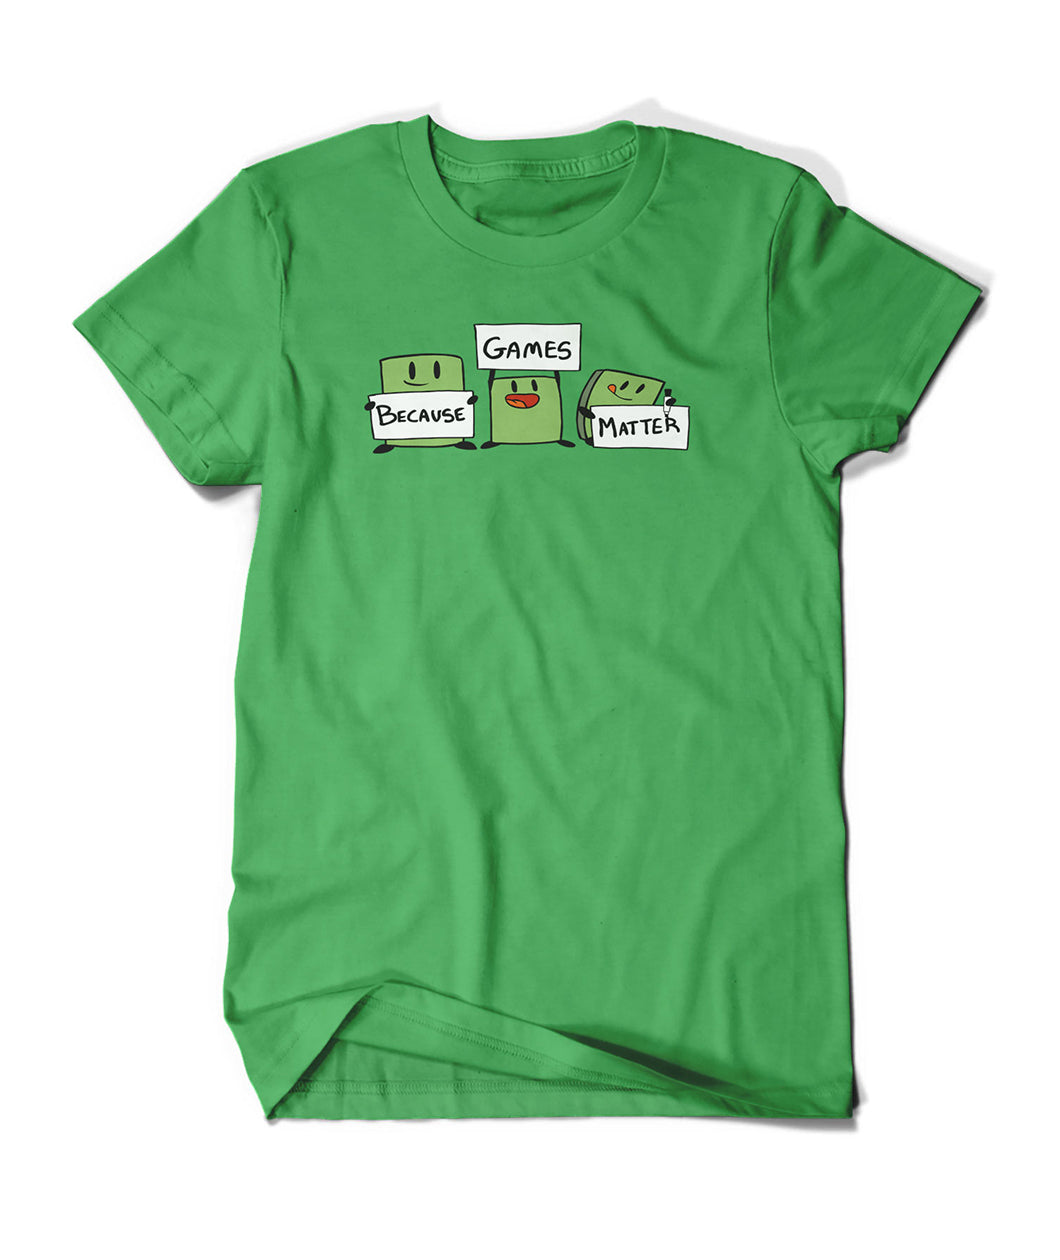 Because Games Matter Shirt (Uni + Curved Fits)